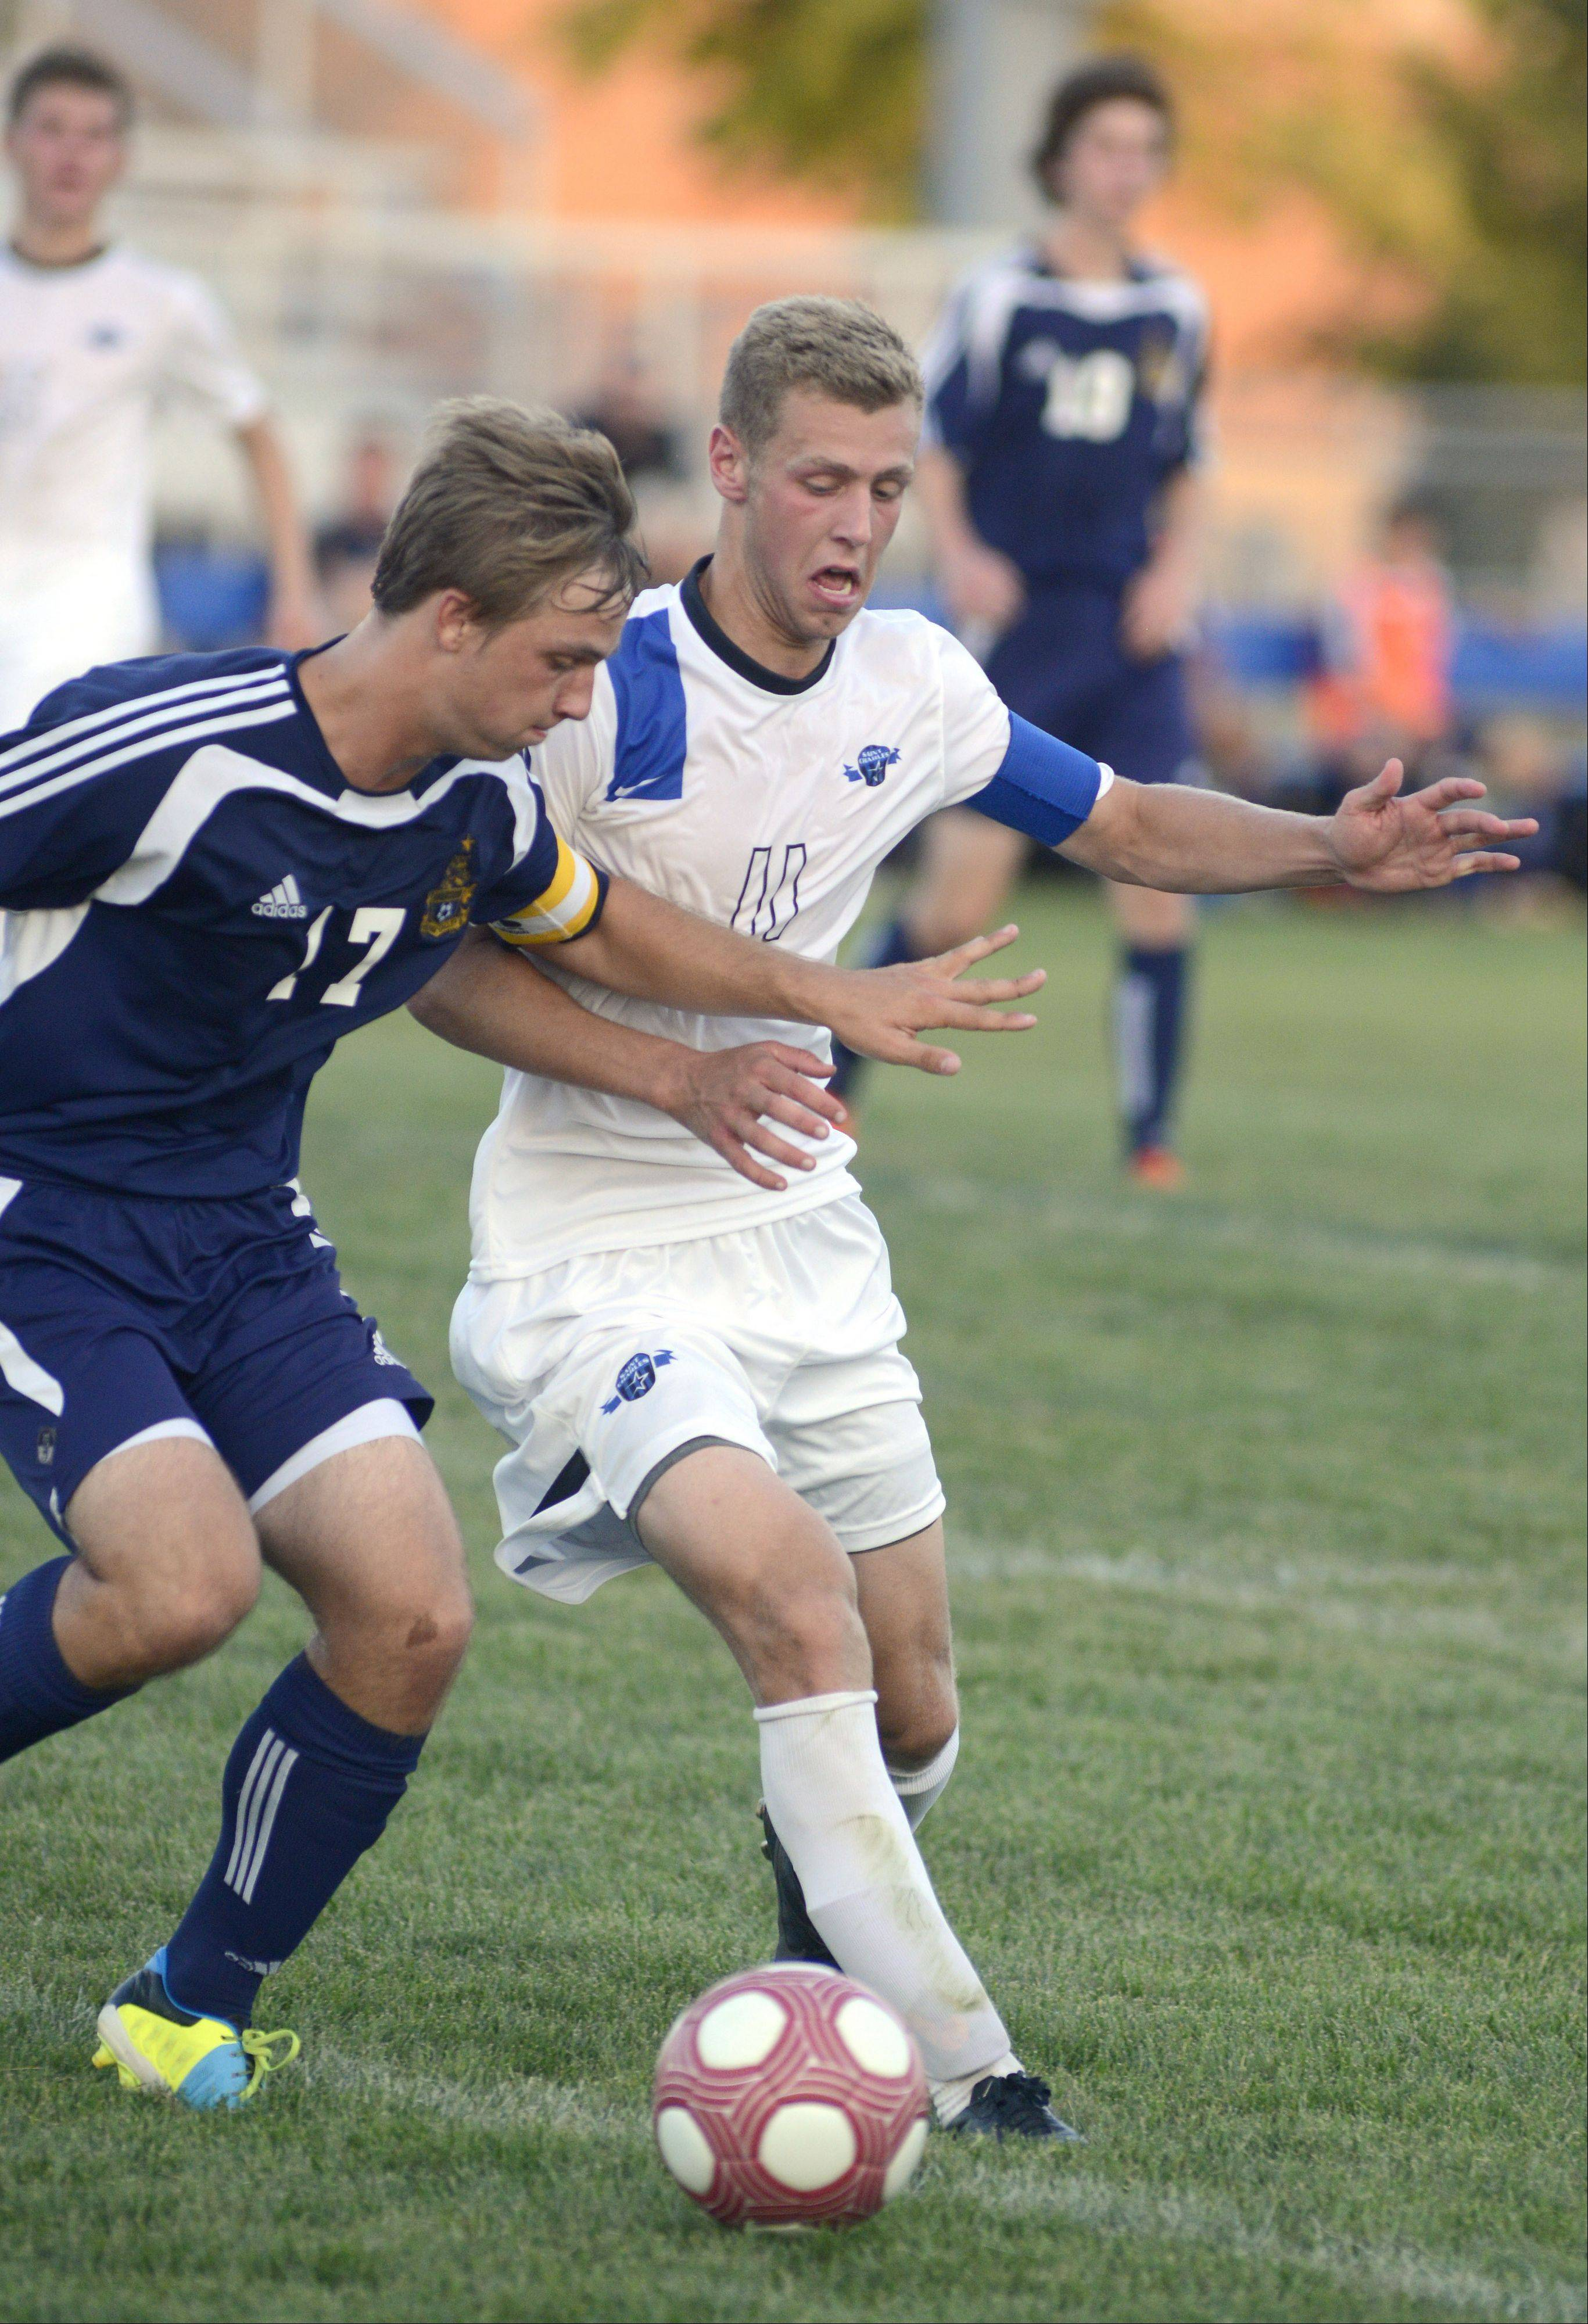 Neuqua Valley's Nick Castelvecchi and St. Charles North's Phillip LeGare fight for possession of the ball in the first half on Tuesday, August 27.